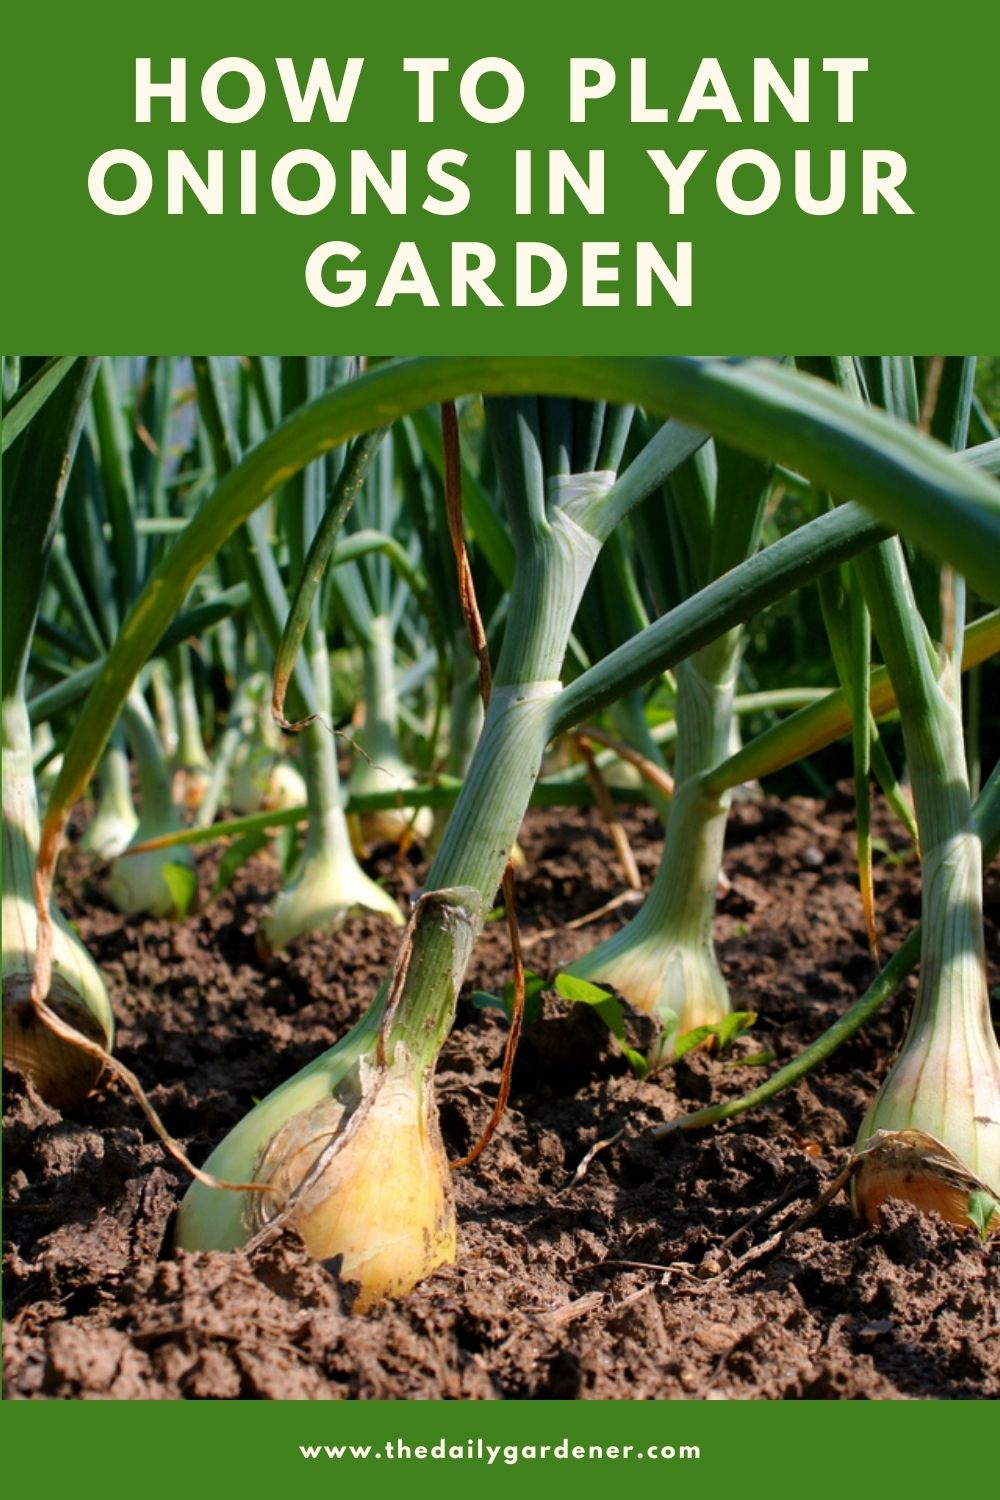 How to Plant Onions in Your Garden (Tricks to Care!) 1